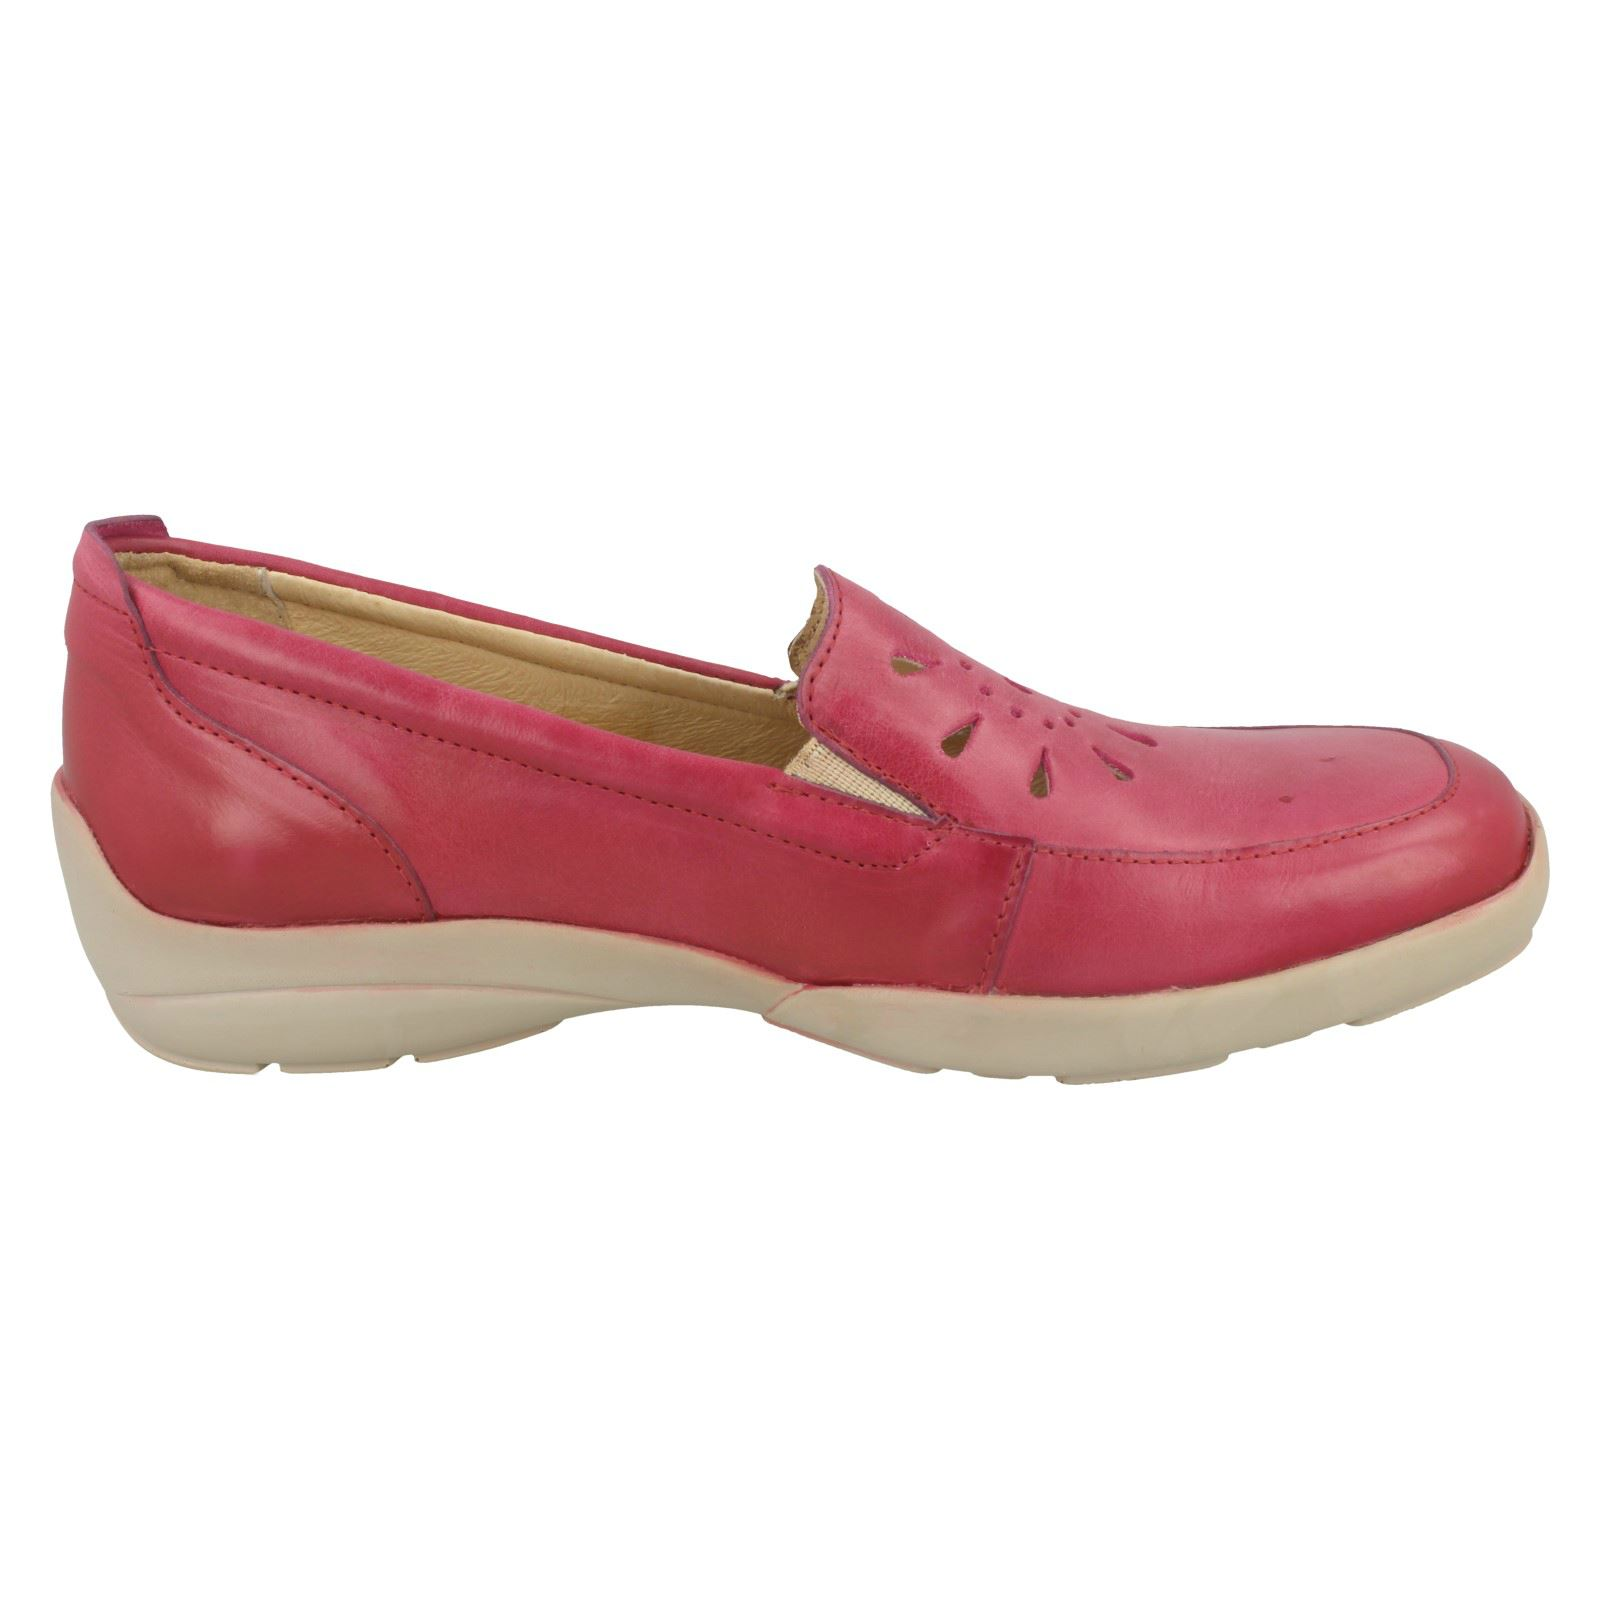 Easy B Ladies Comfortable Slip On Shoes Galway